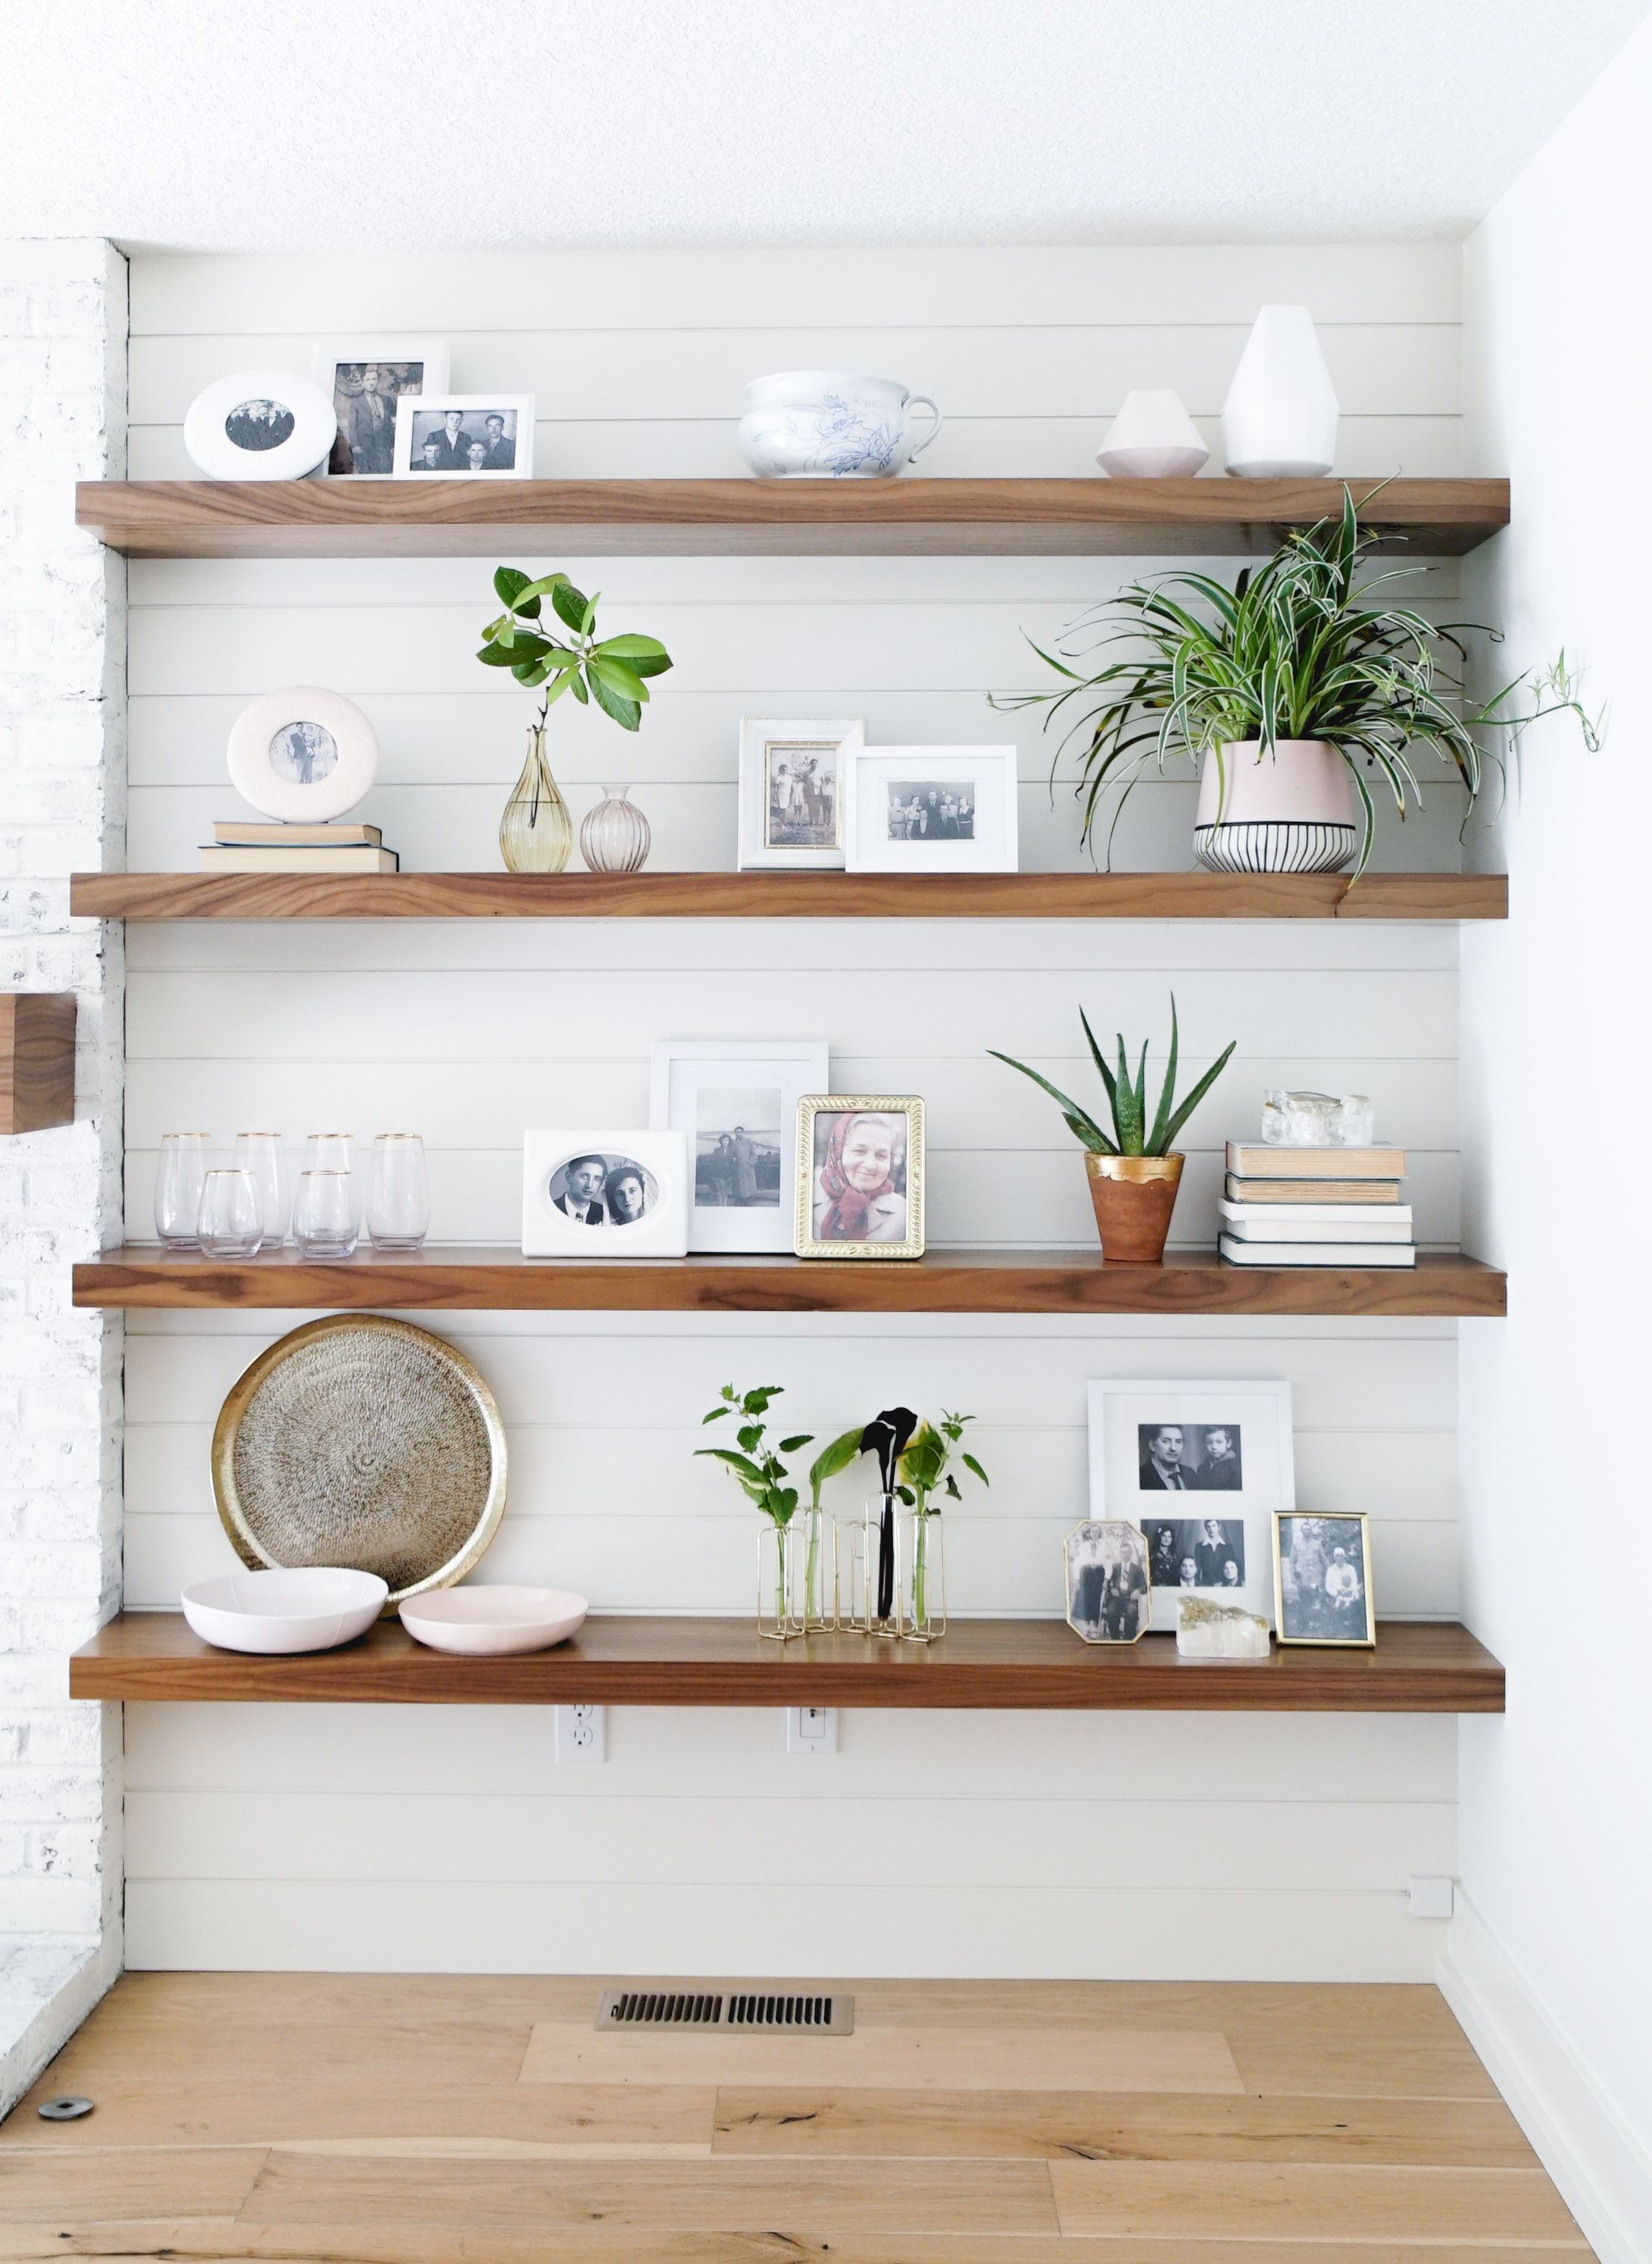 My sweet client, which happens to be my mother in law wanted to incorporate black & white photos of her parents and family on these open shelves. With a few plants and books this shelfie turned out to be so cute!